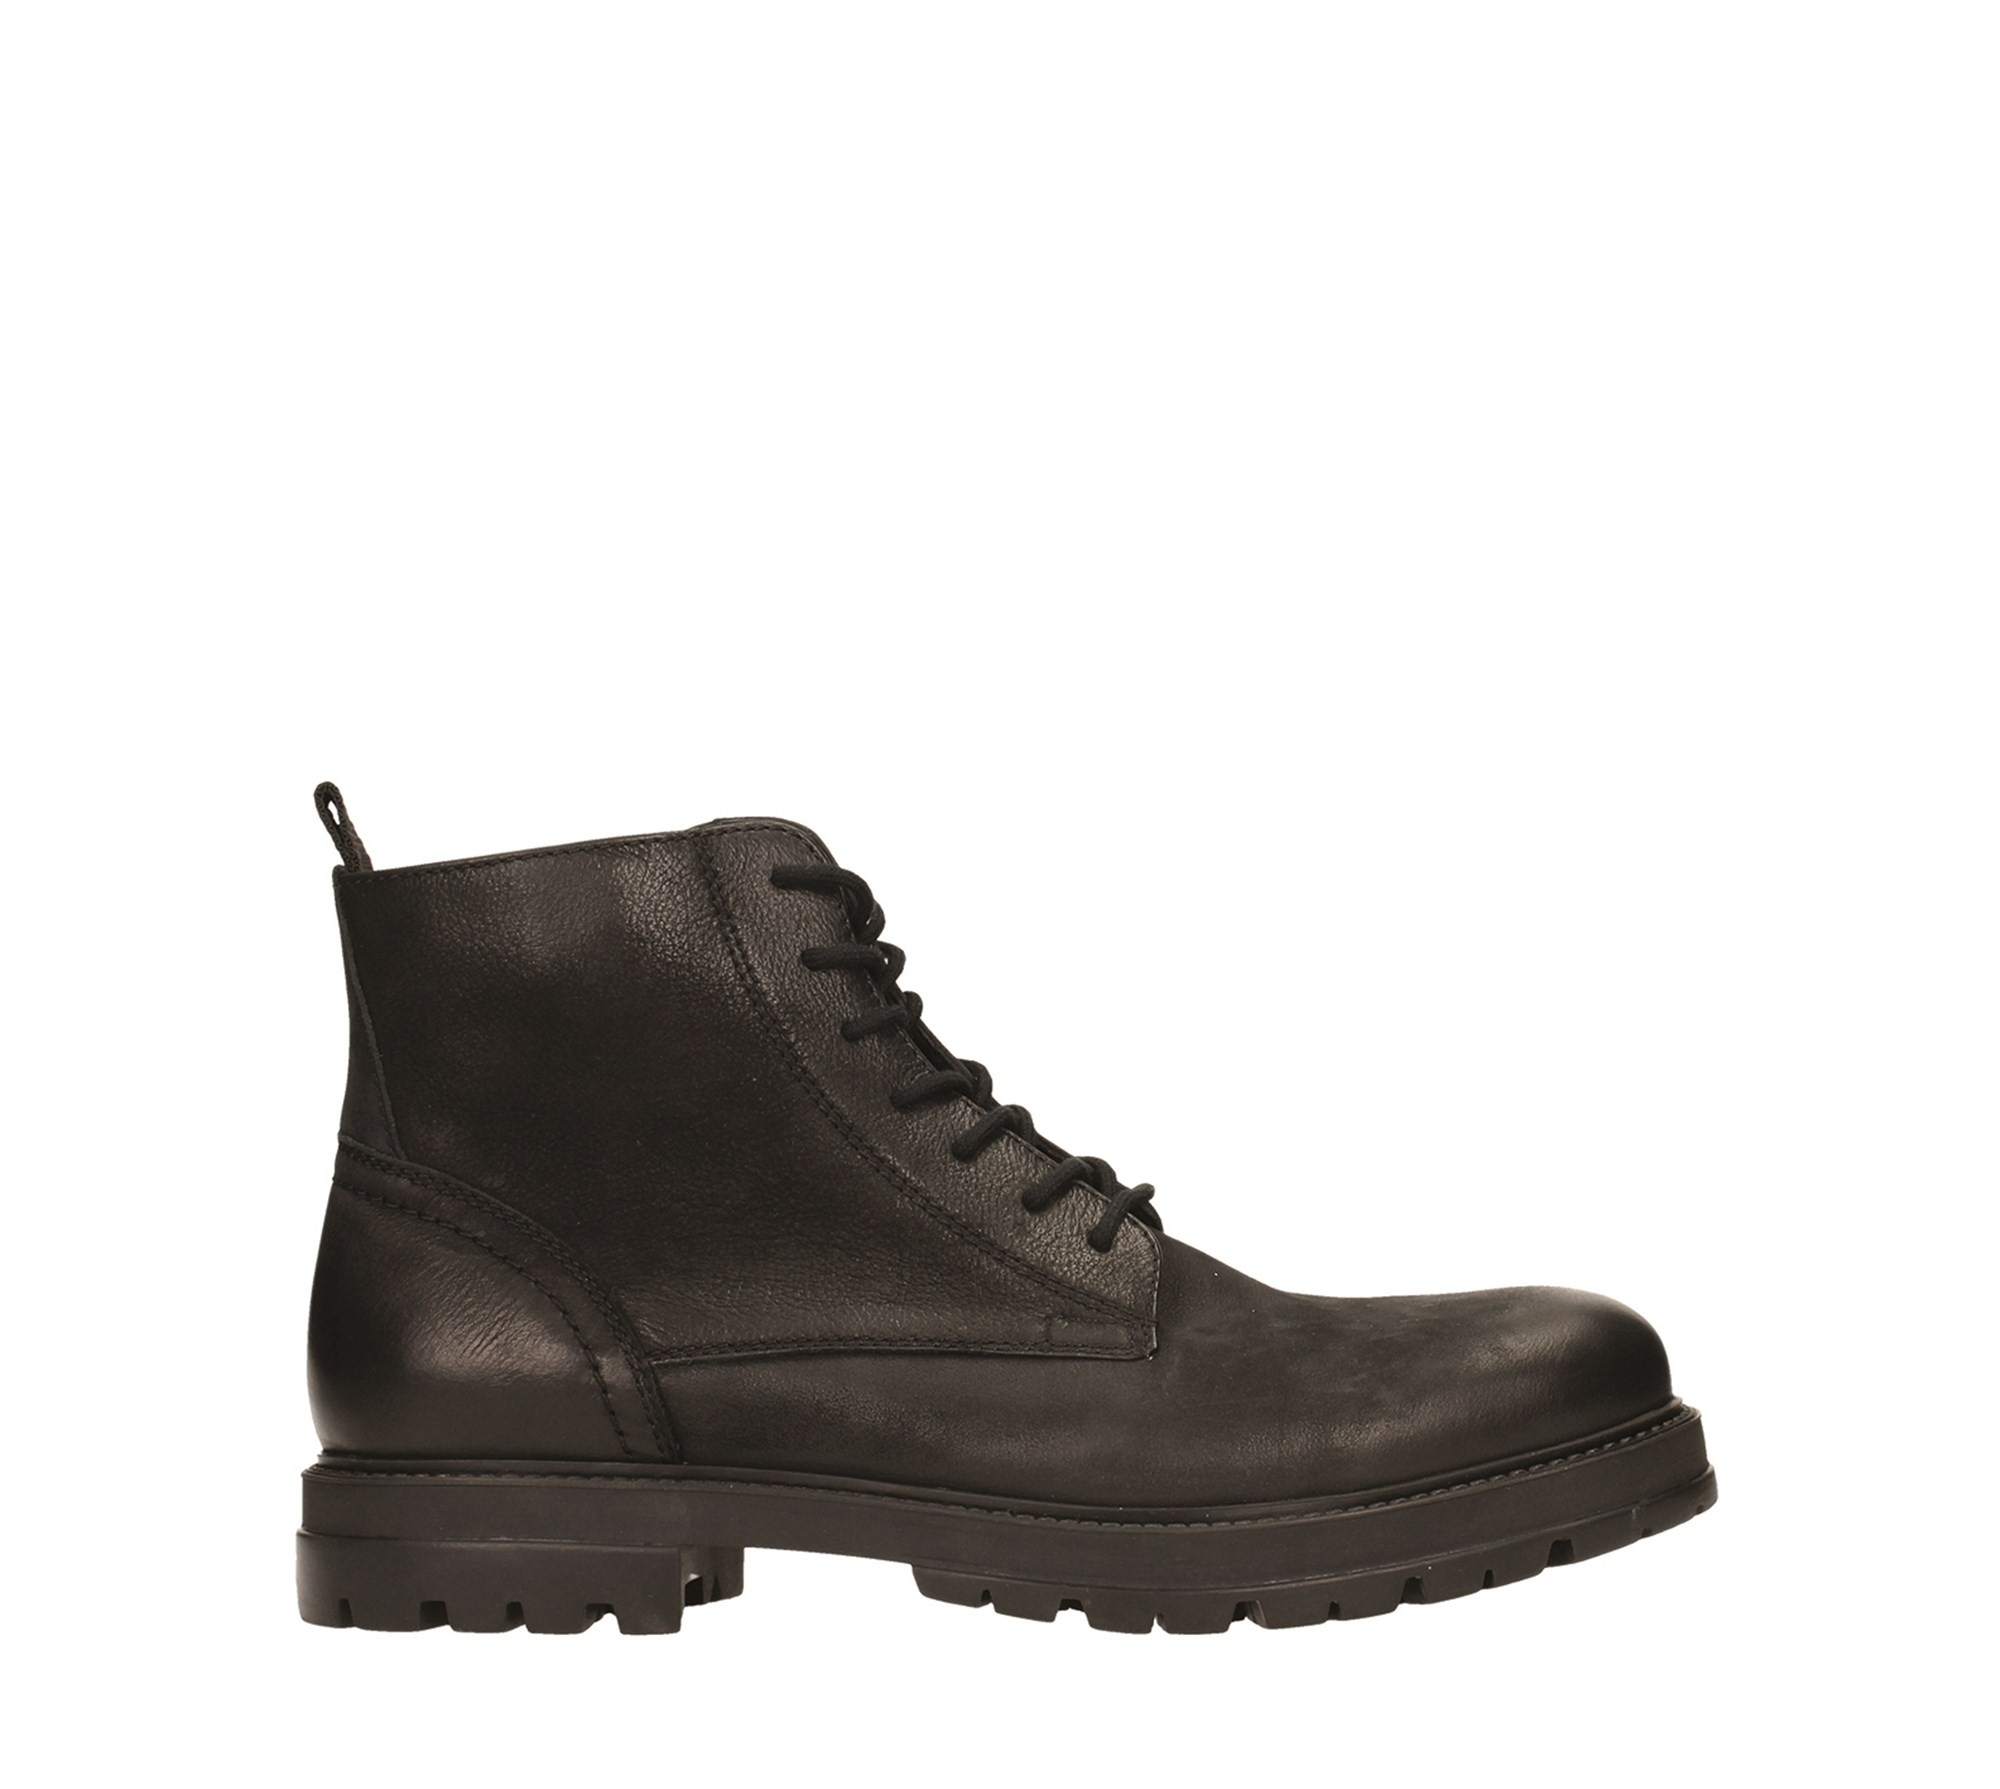 Tata Italia Shoes Man Stivaletti MH-400H02